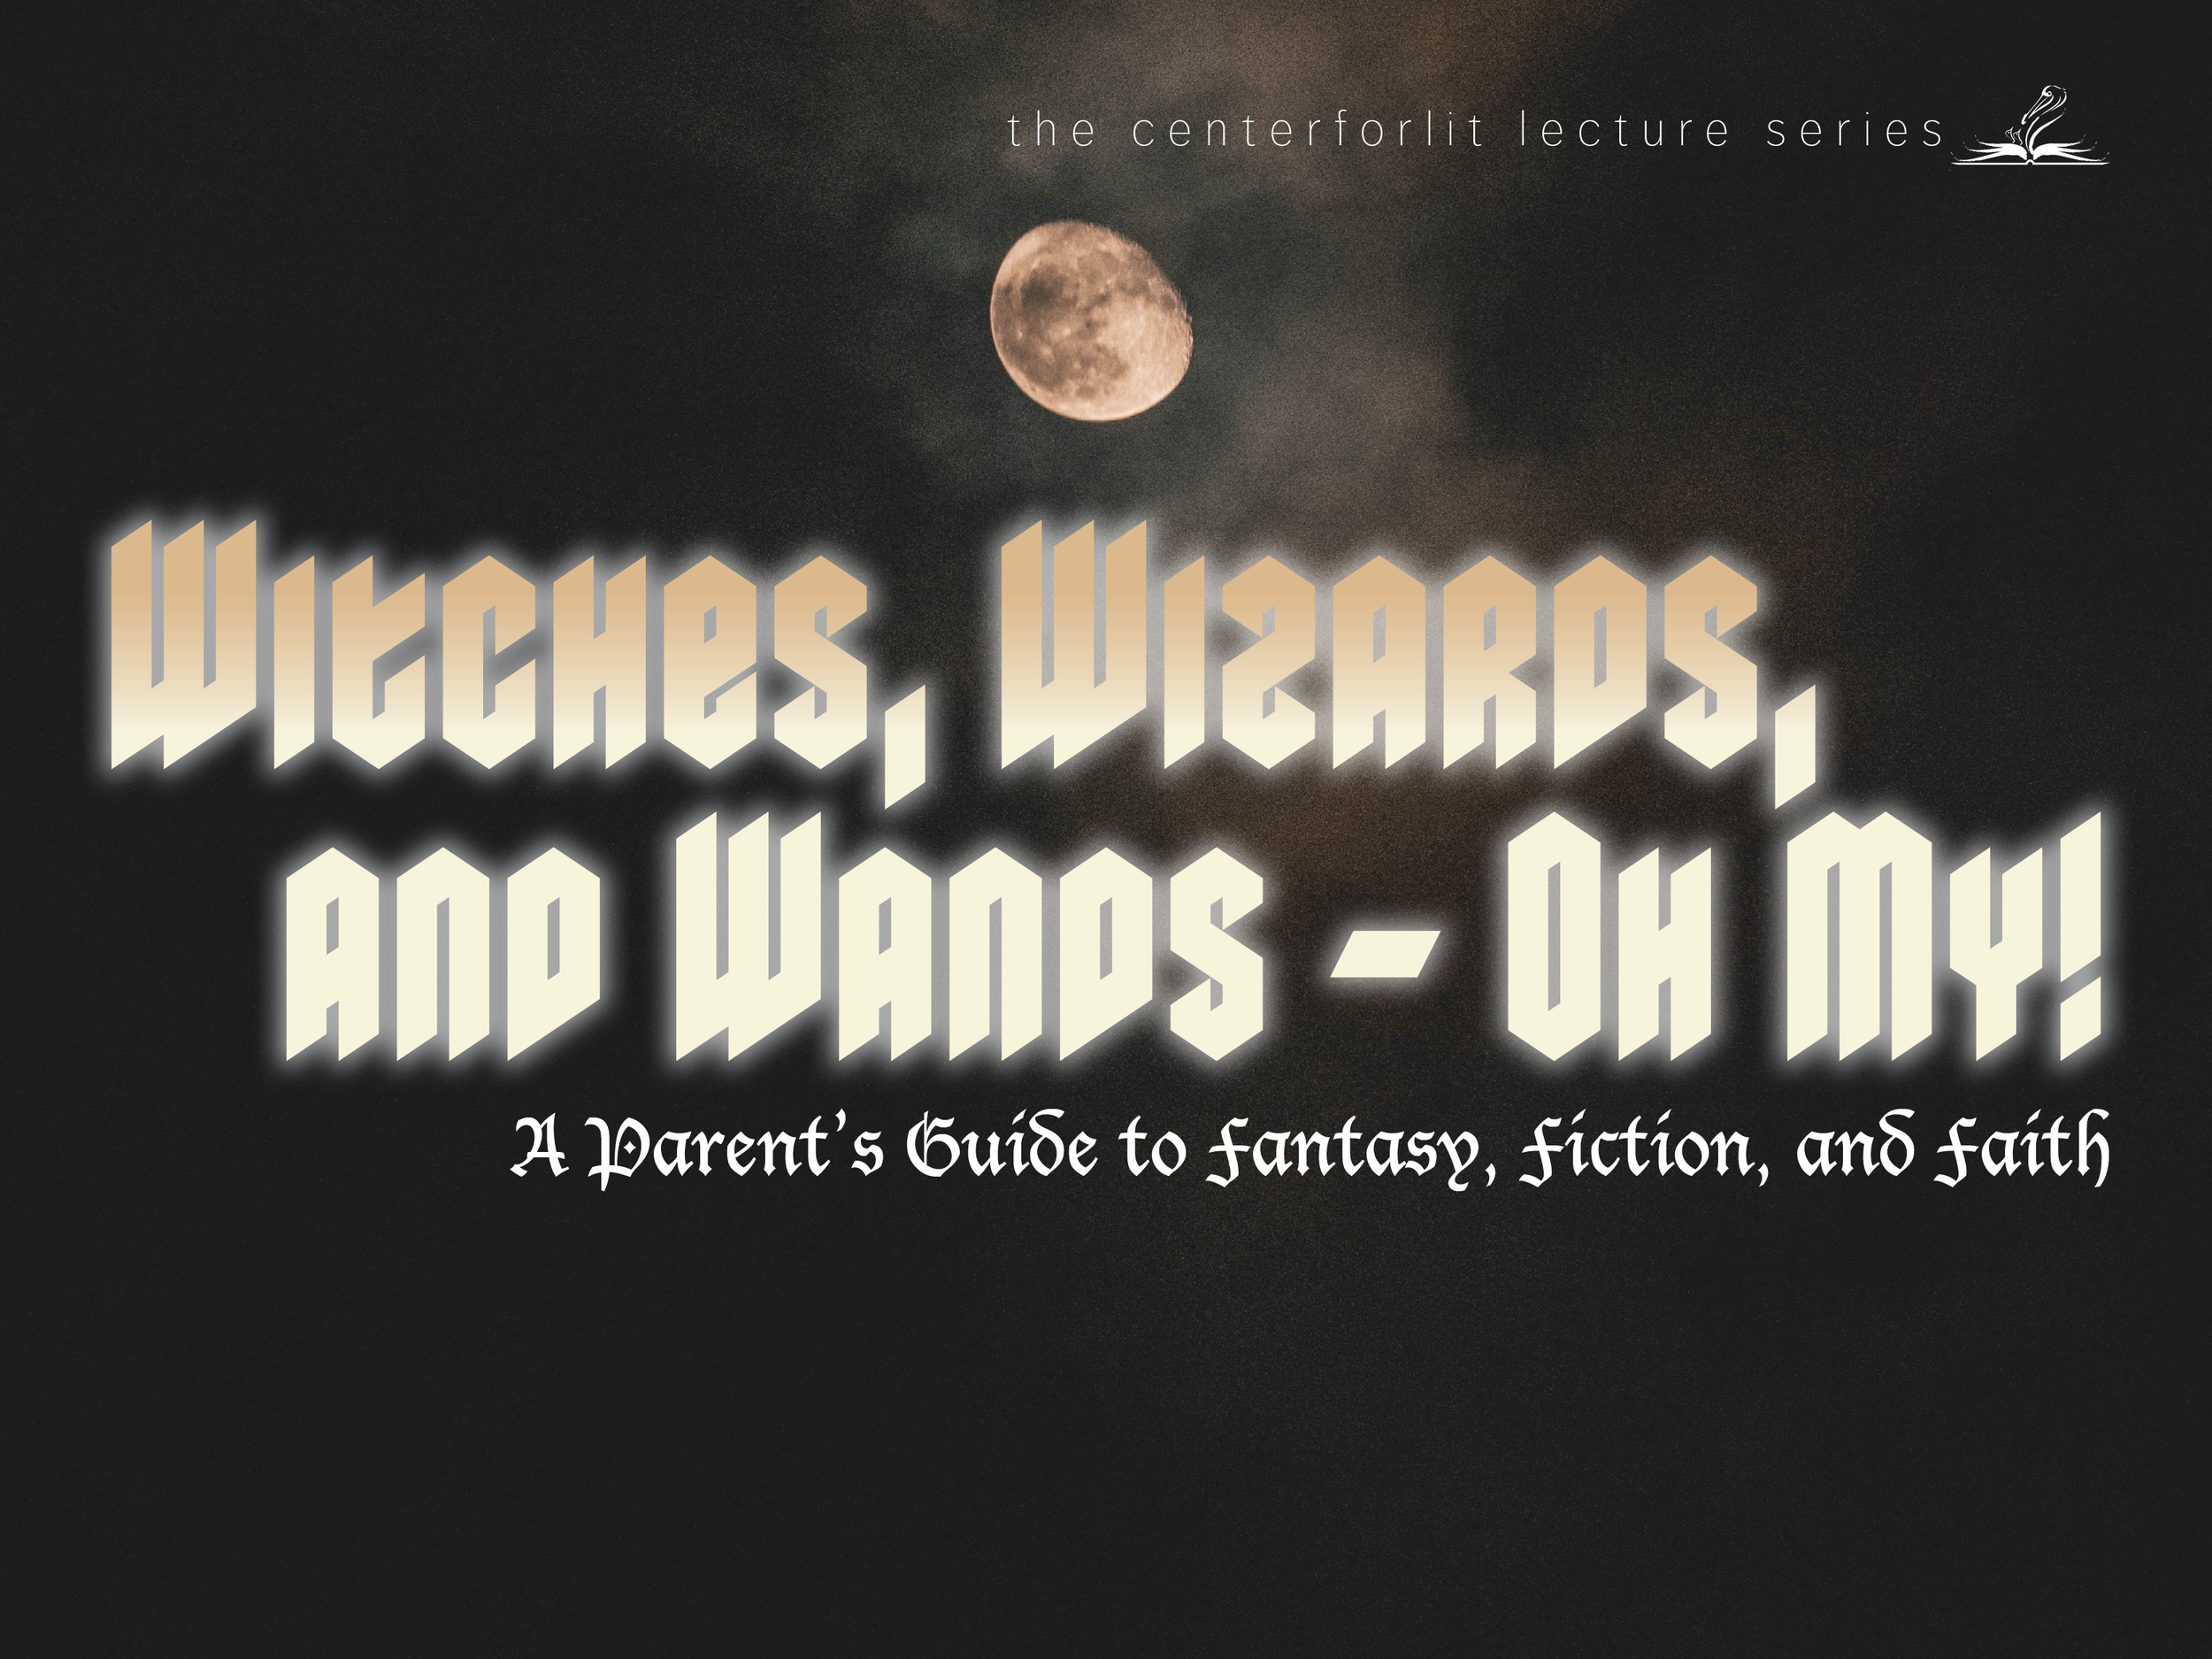 Lecture Series- Witches, Wizards, and Wands.png